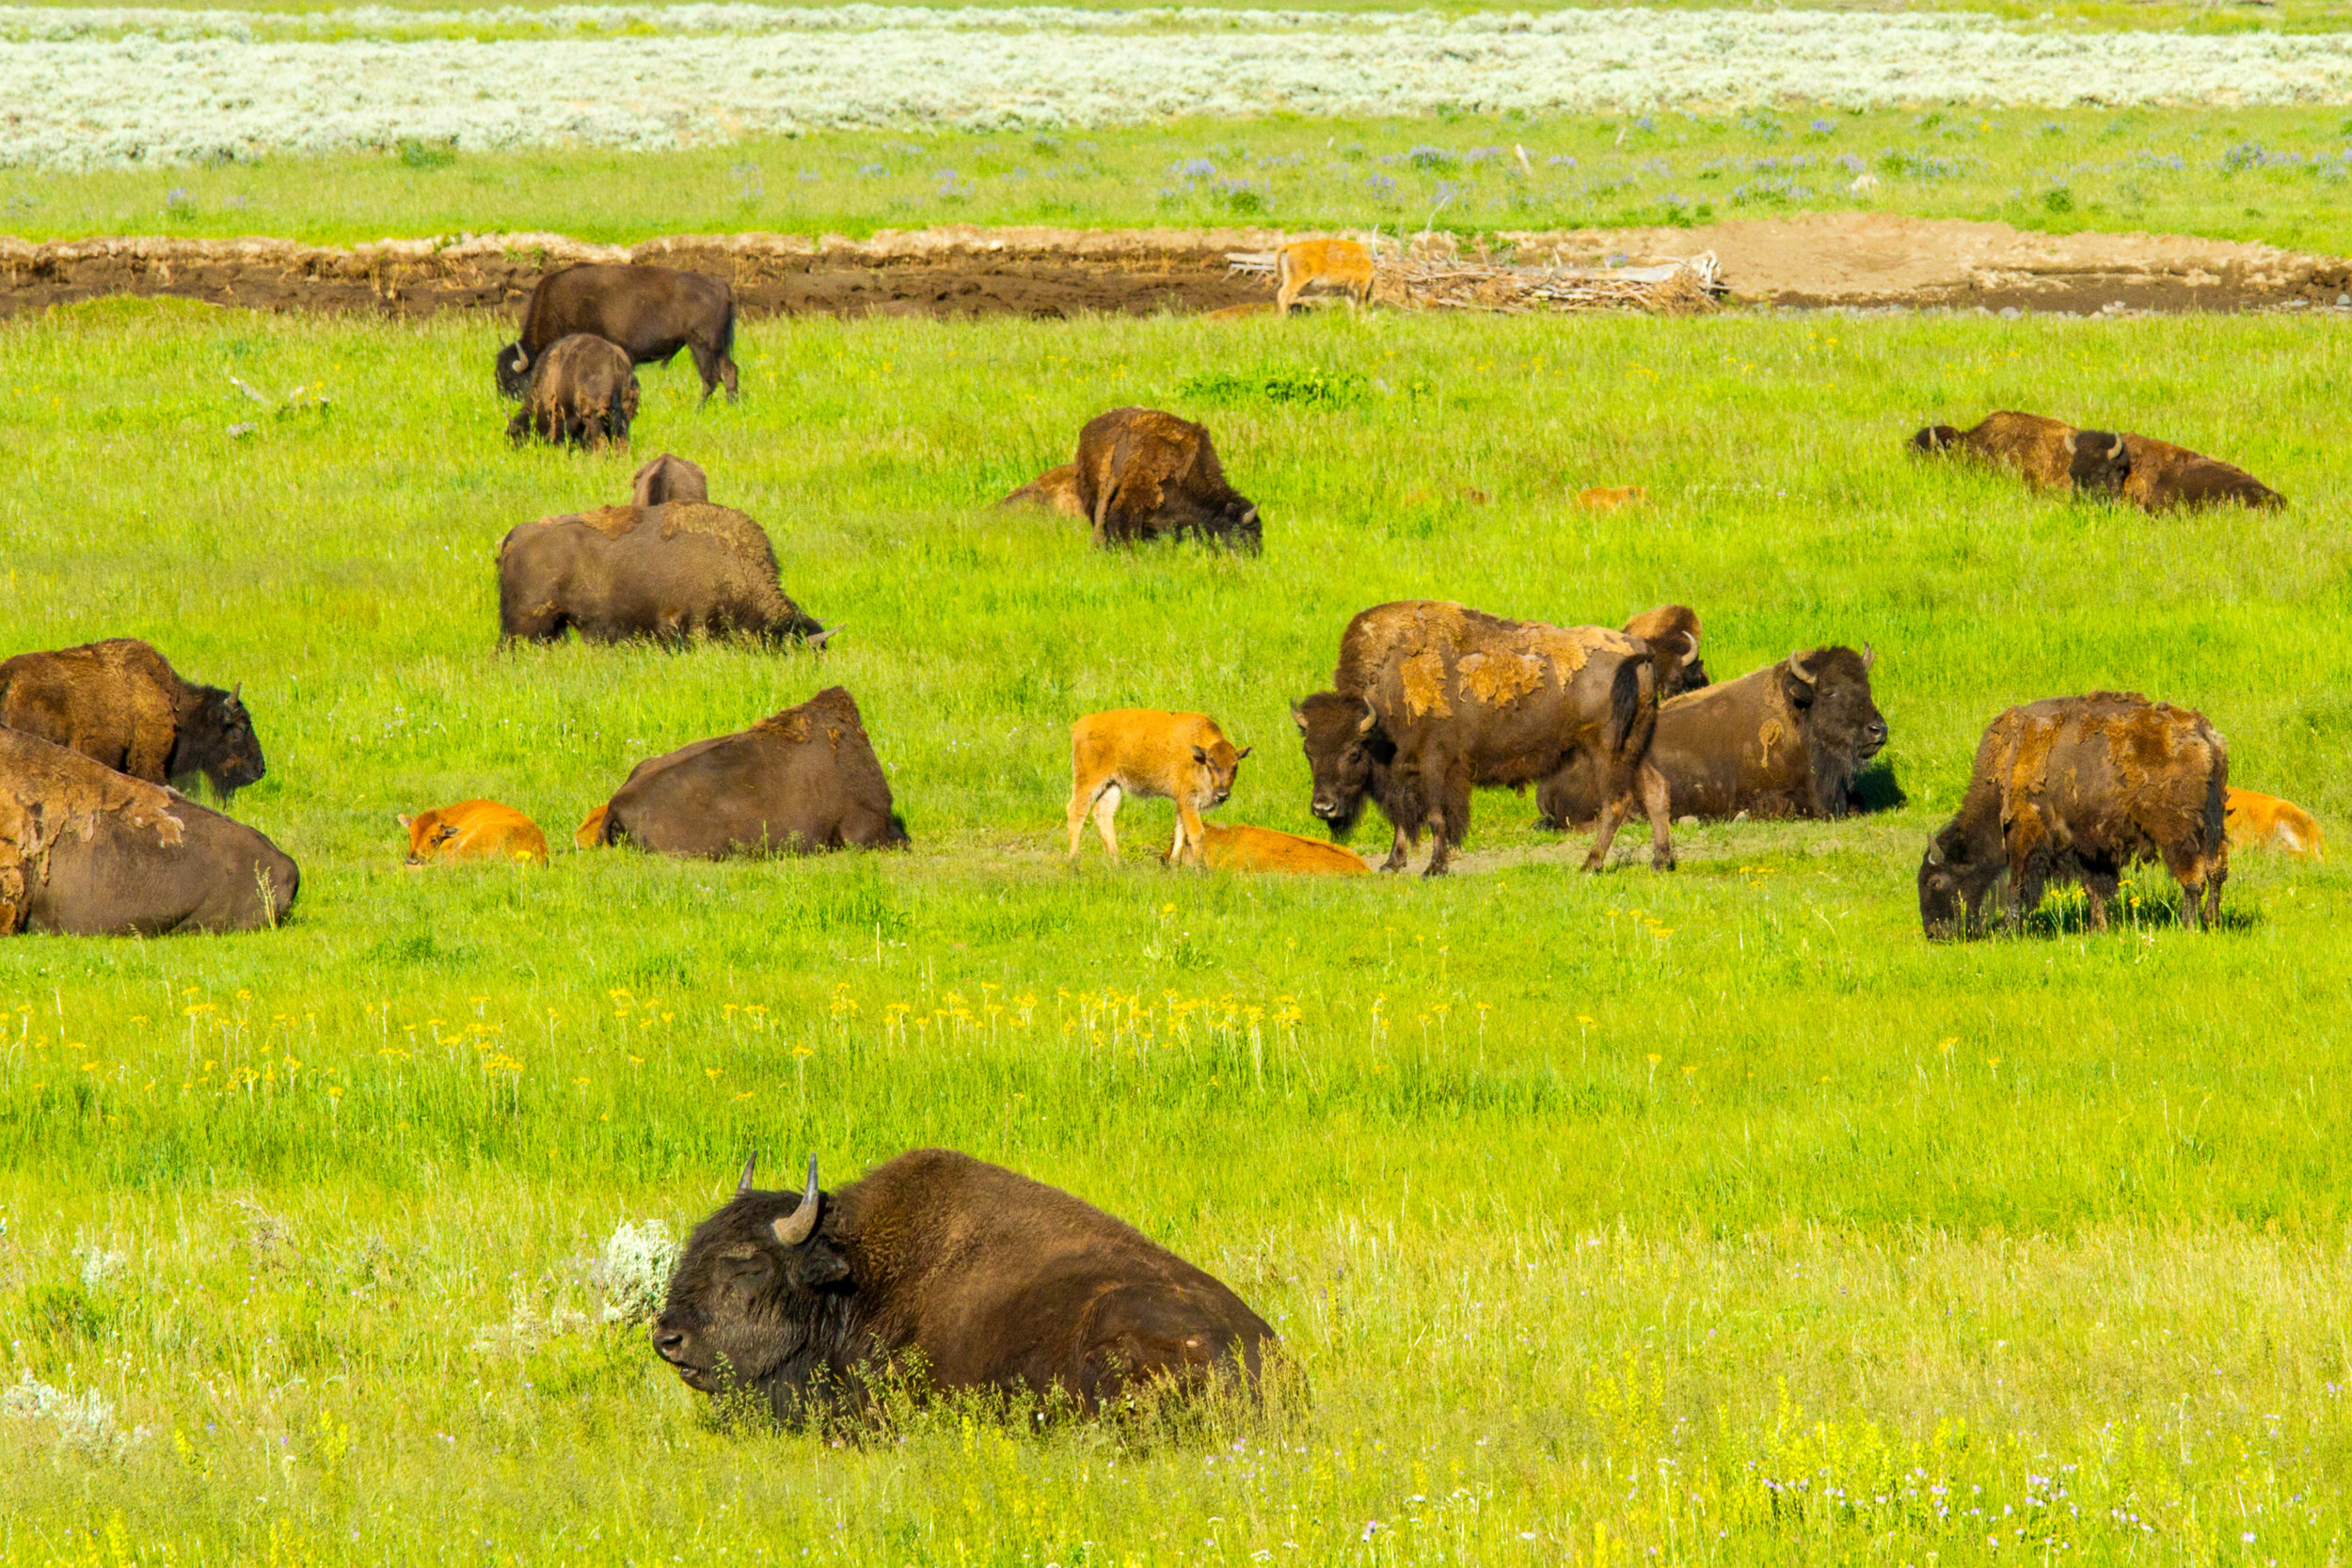 Lamar Valley, Yellowstone National Park, Image # 5116